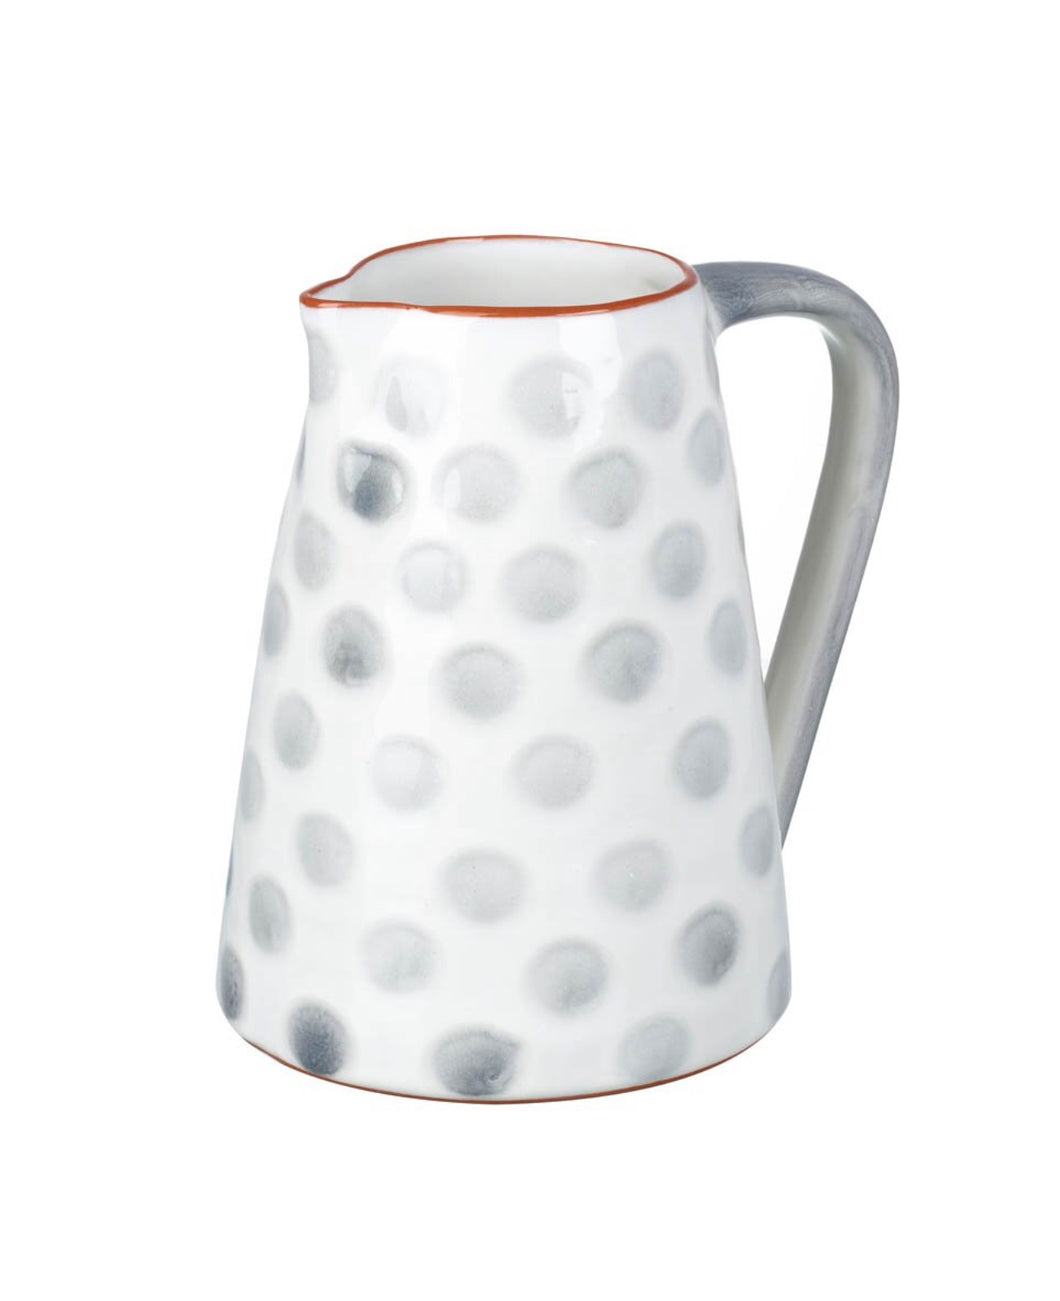 Polka Jug White and Grey